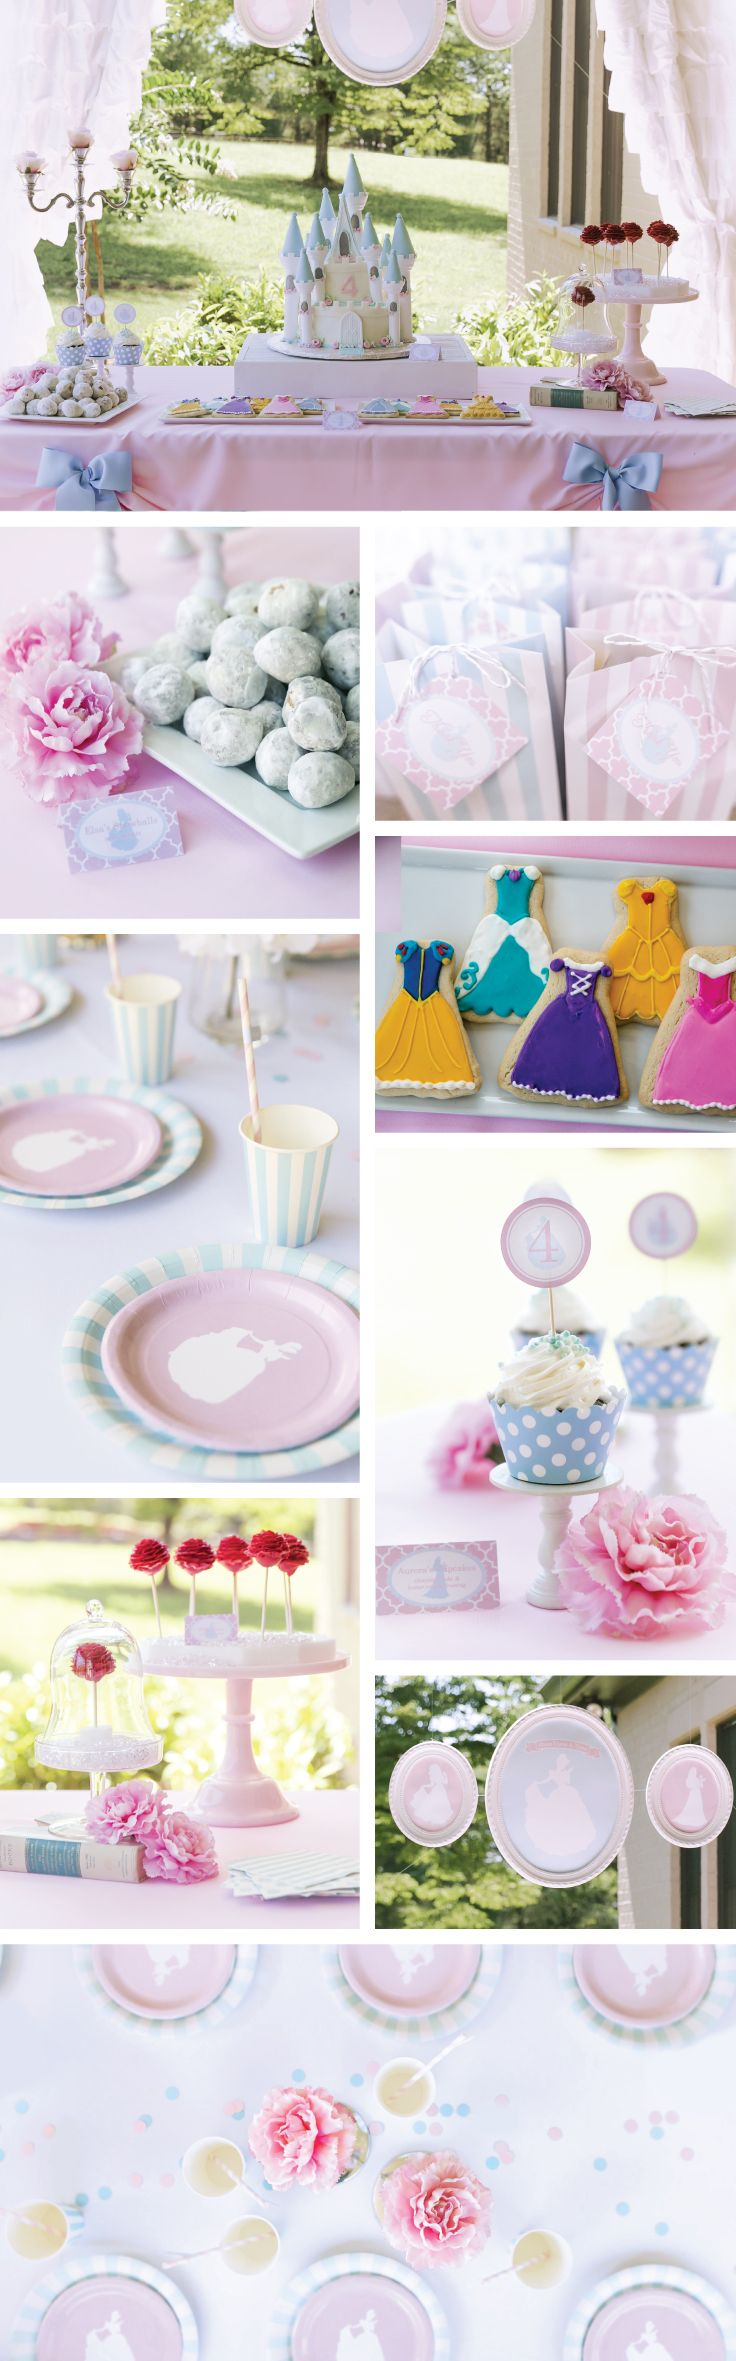 Princess Party Kit | Princess Party Decor | Cinderella Party | Pink and Blue Royal Celebration | See the entire Princess Hostess Kit at www.UndercoverHostess.com!